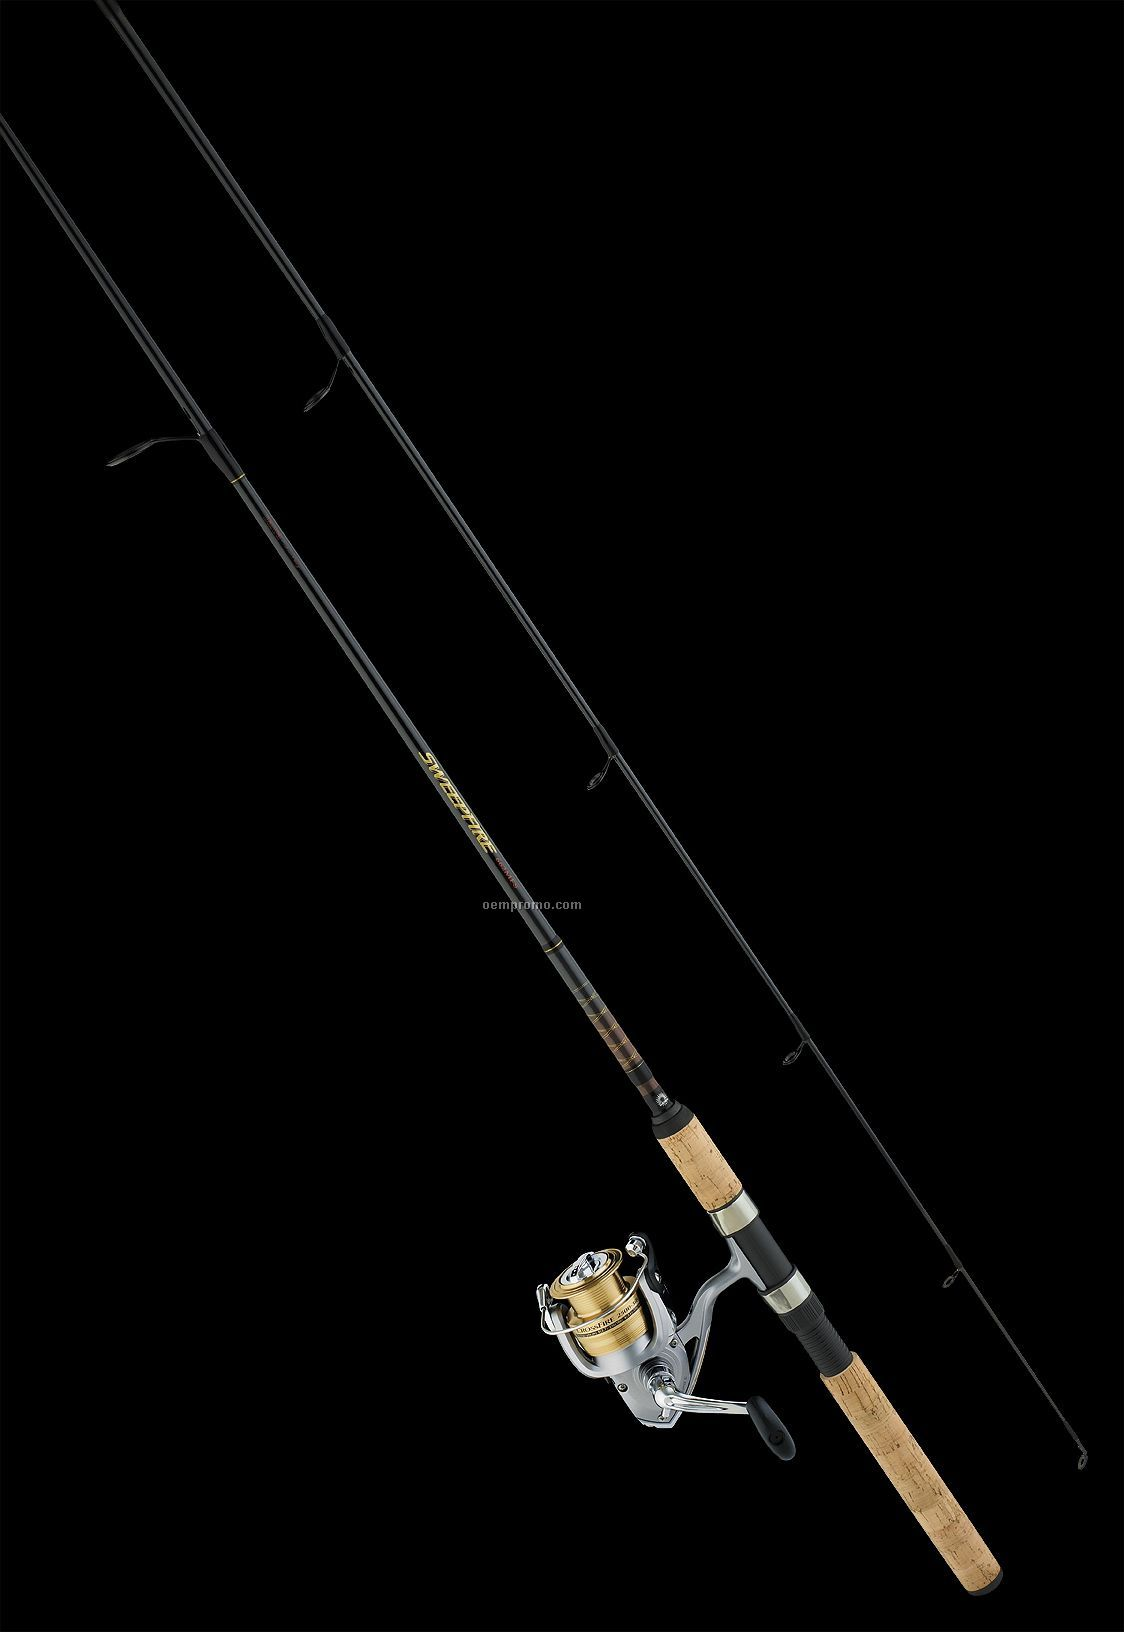 Daiwa Crossfire Spinning Reel & Rod Combination